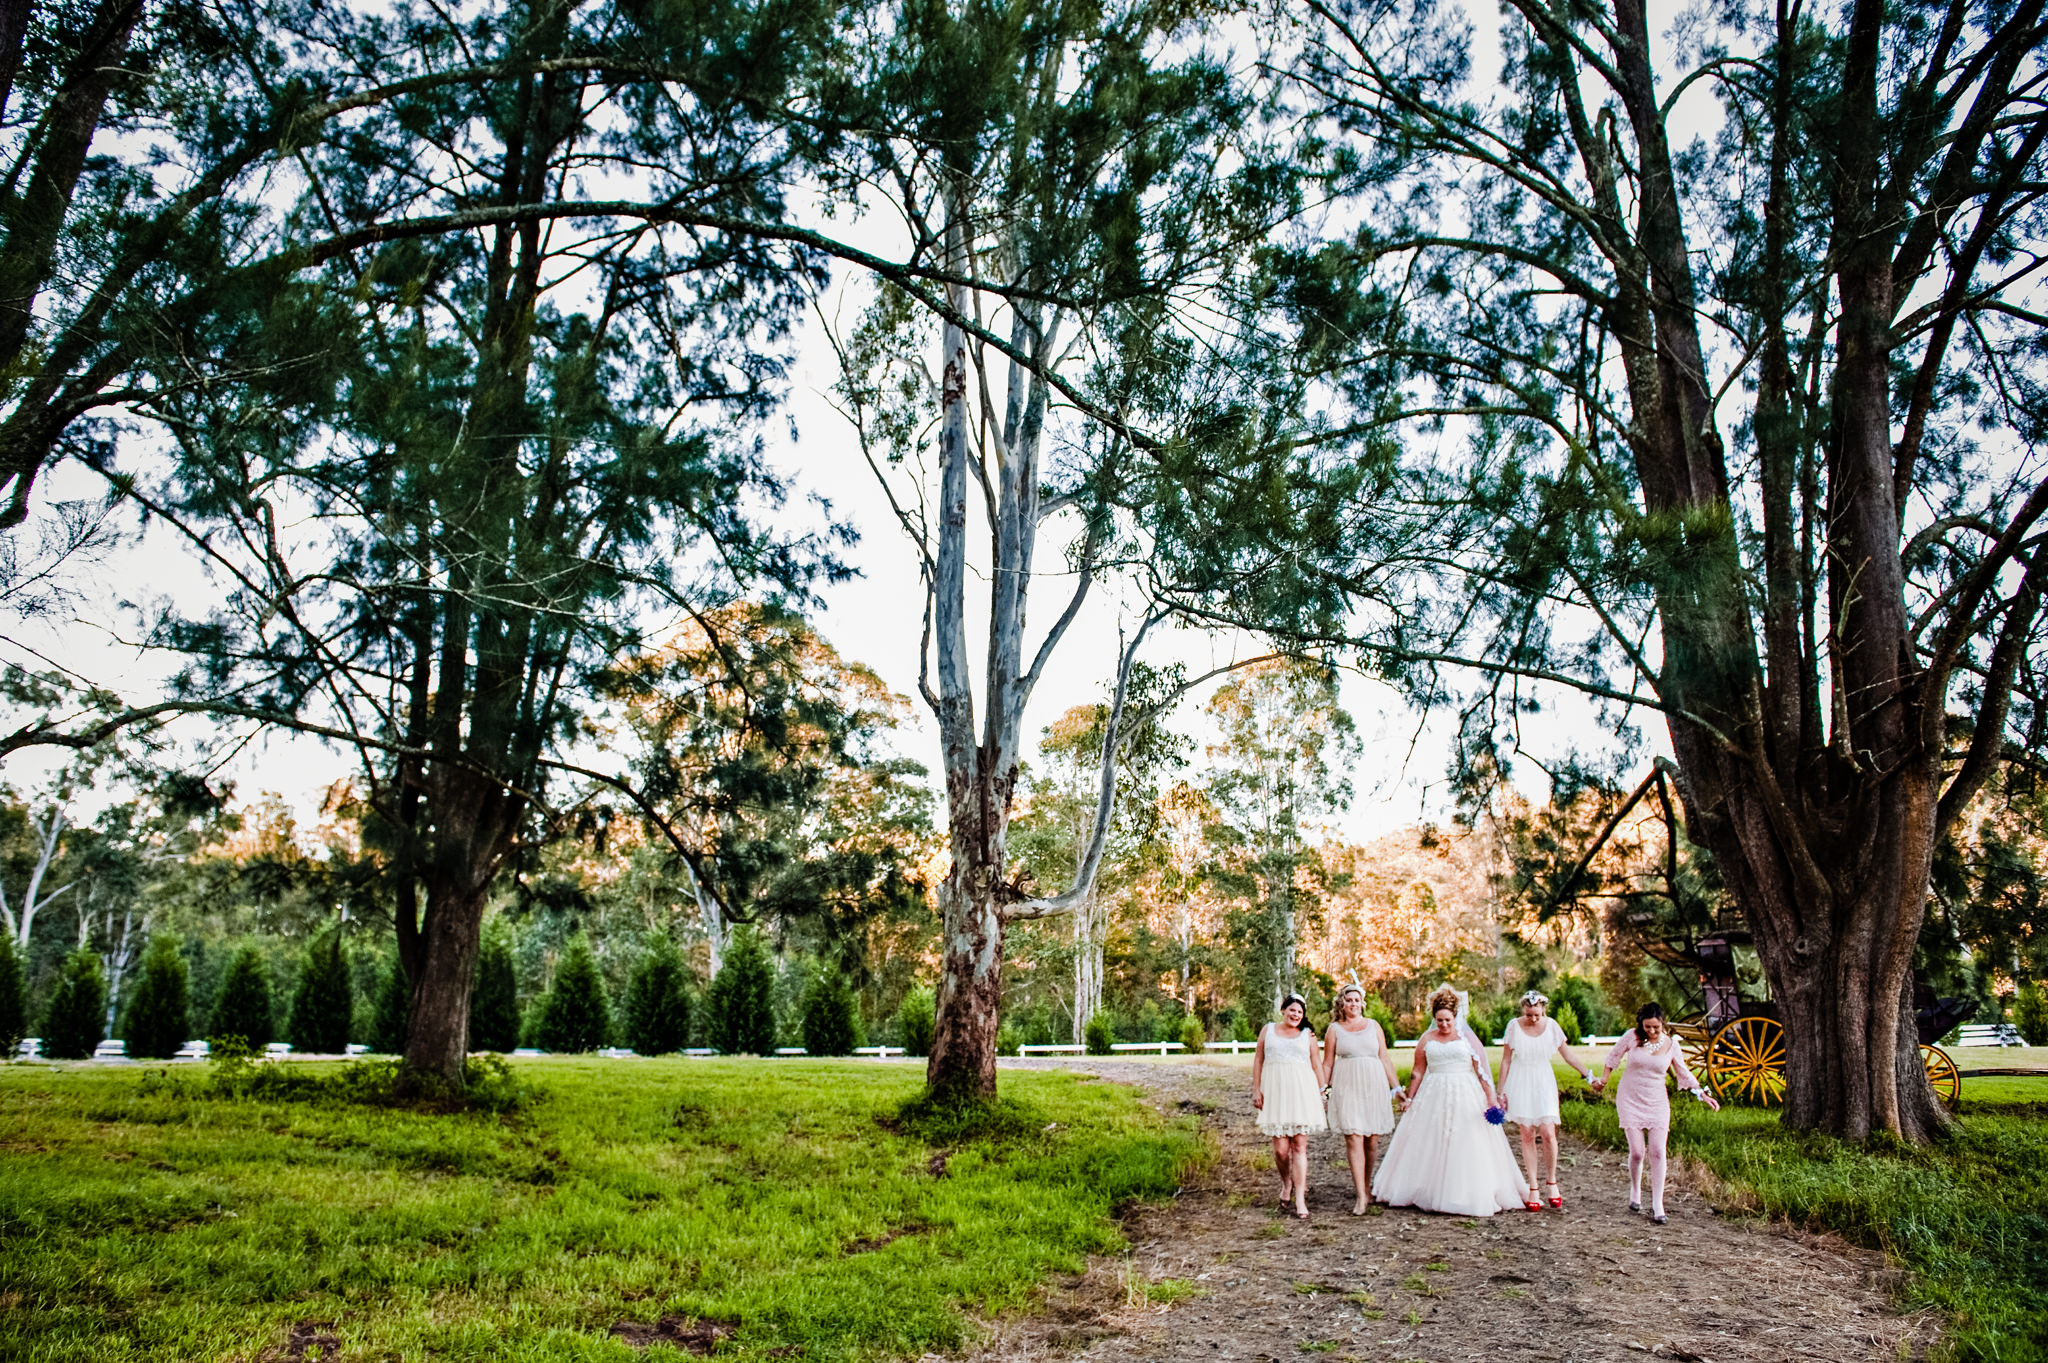 Bridesmaids and bride walking through gardens at Redwood Park